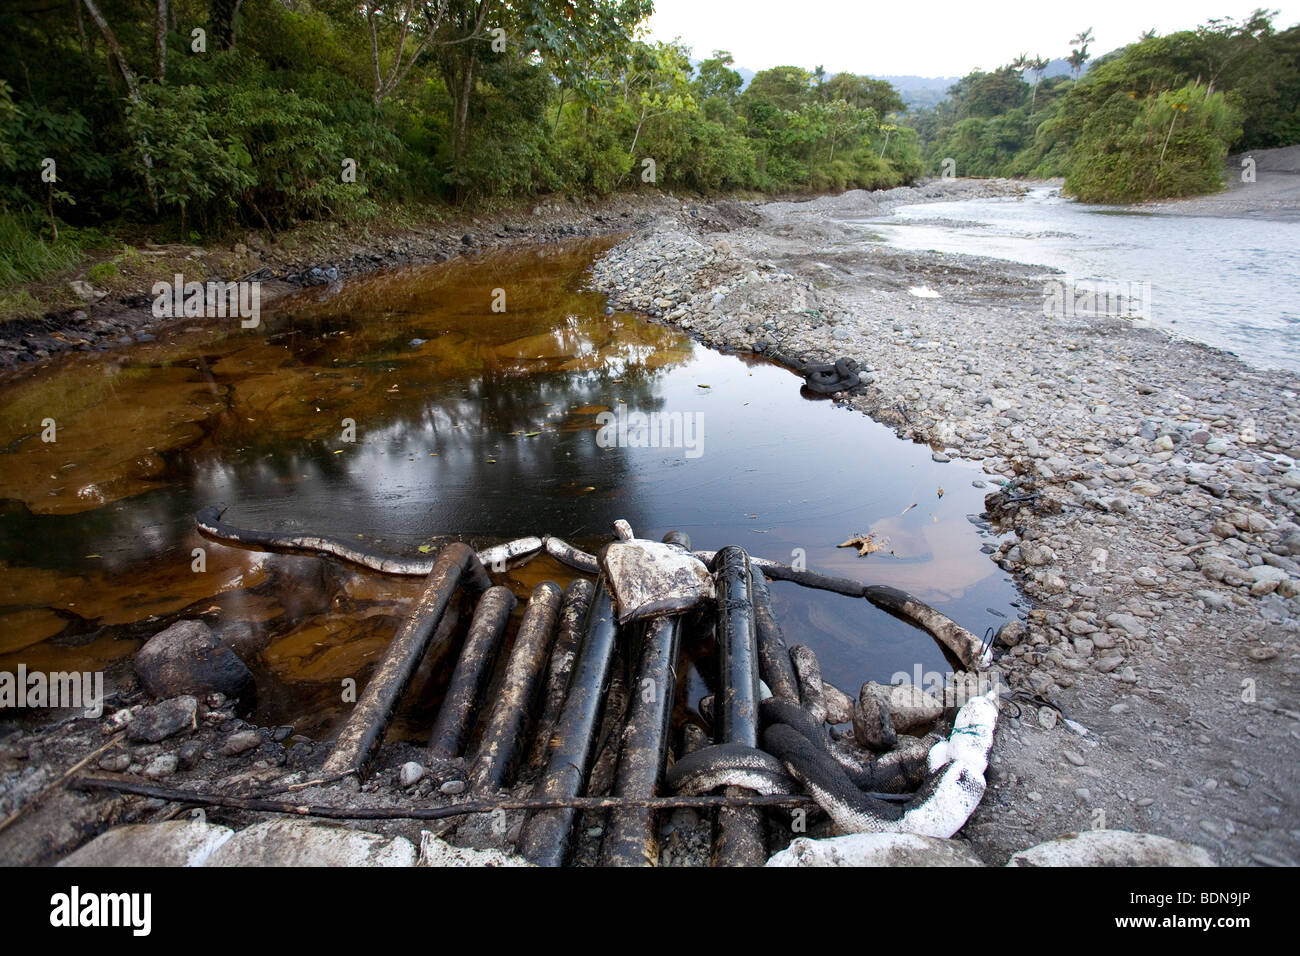 Oil trap at the edge of an Amazonian river, built to retain crude oil from a spill - Stock Image